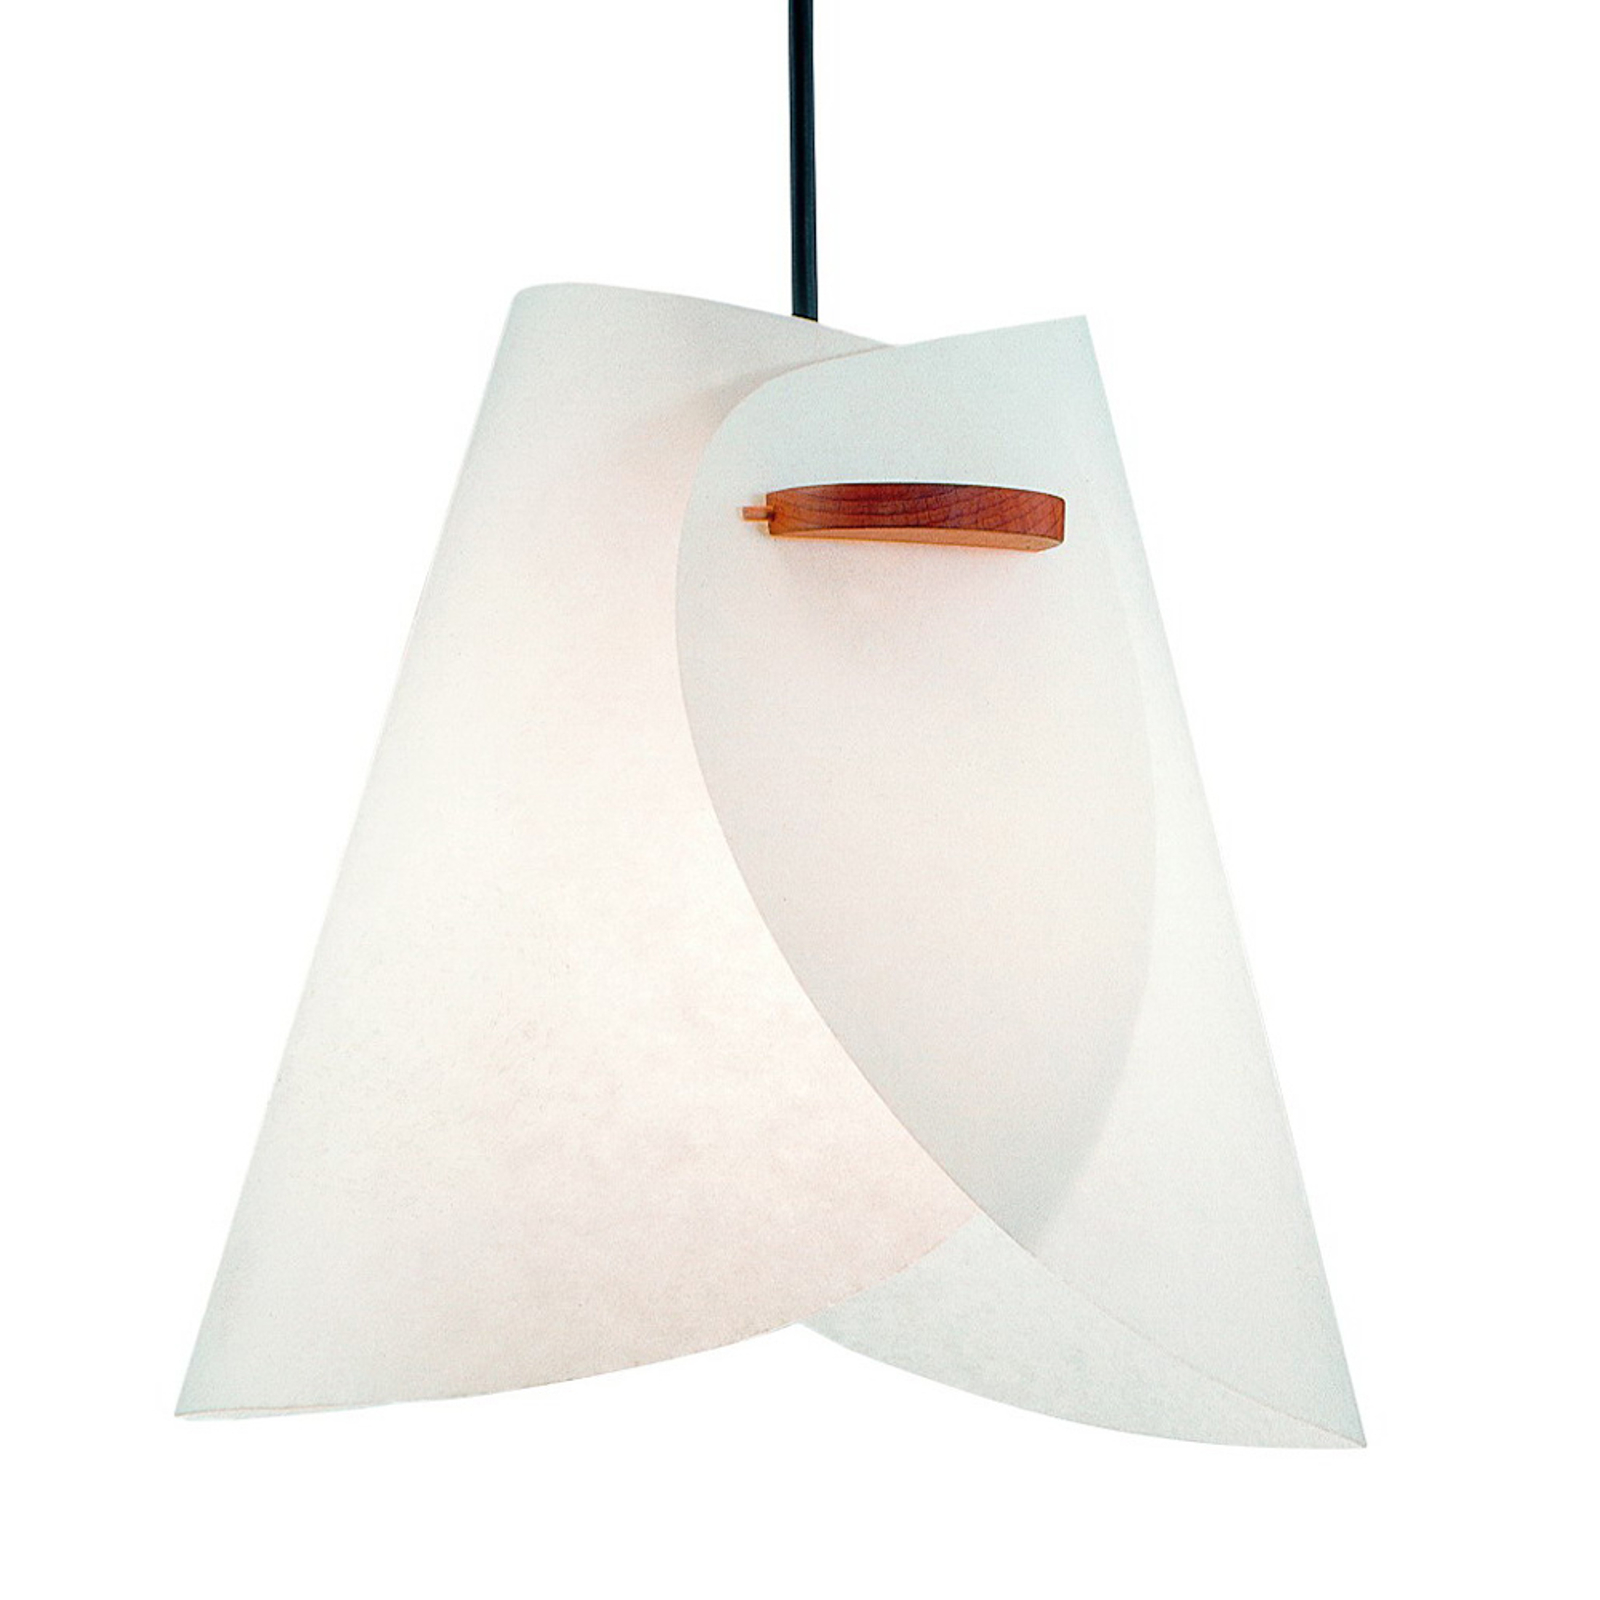 Design pendellamp IRIS